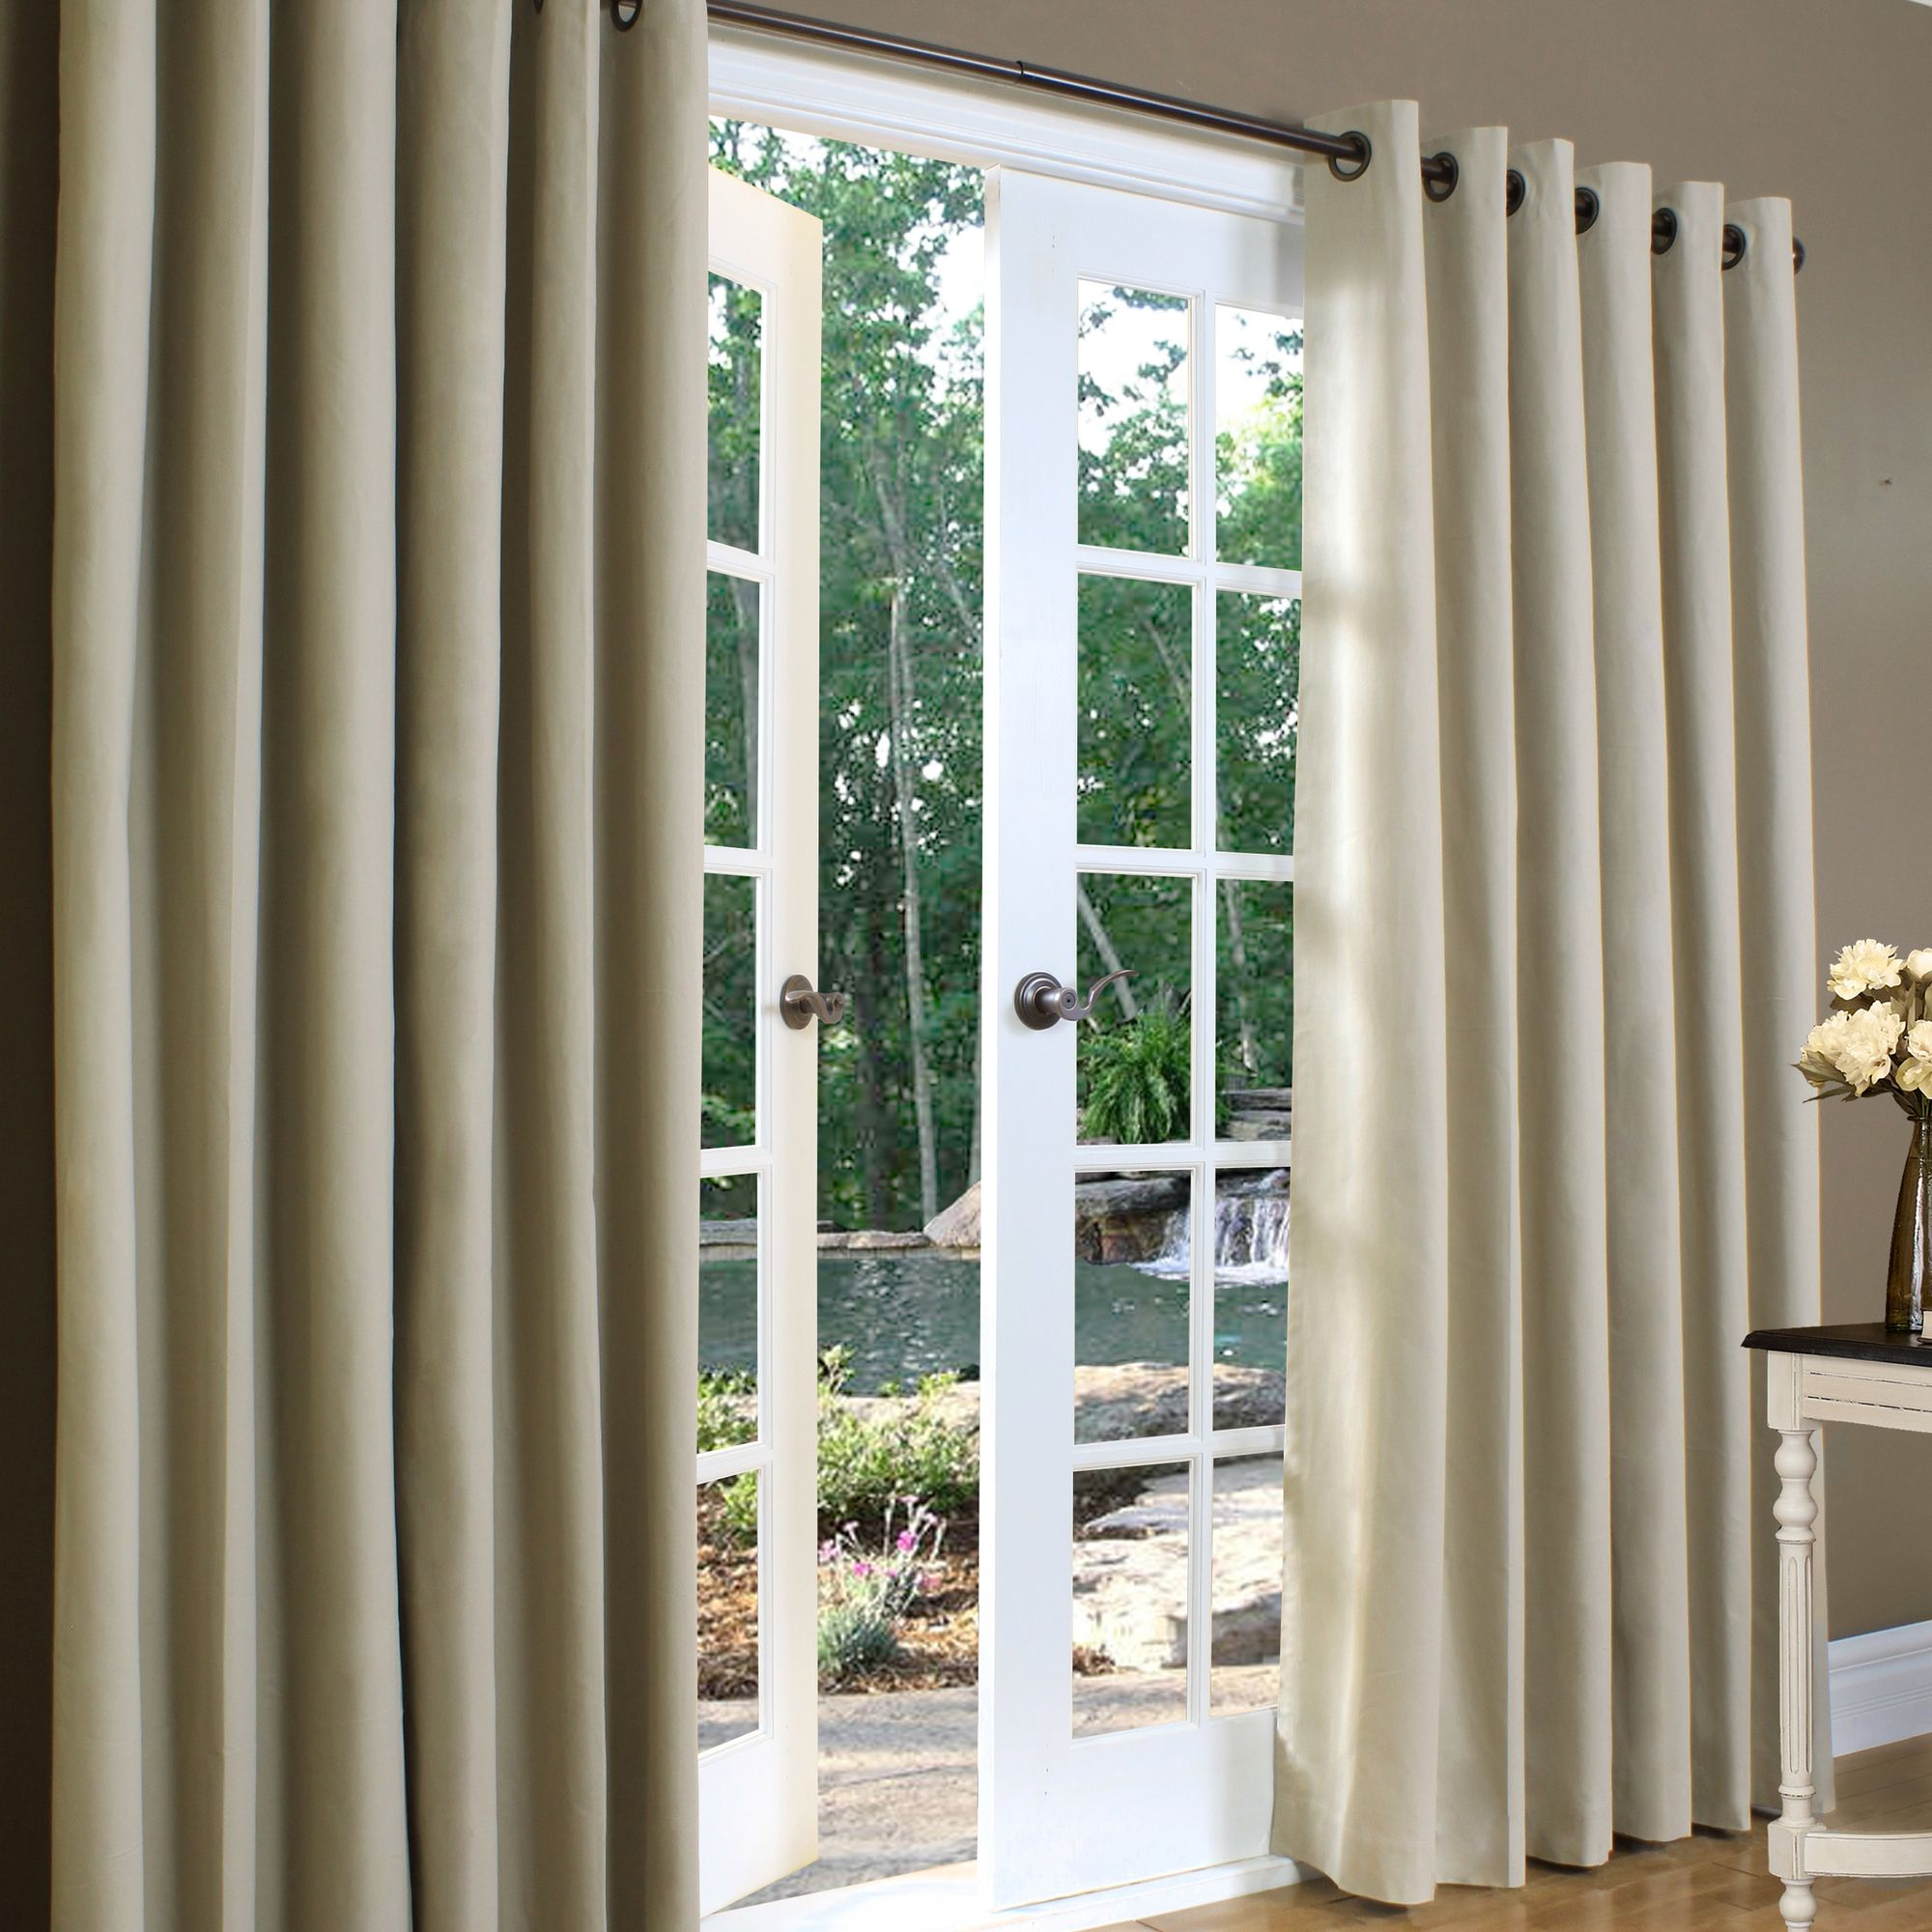 Insulated curtains for sliding glass doors - Insulating Curtains For Sliding Glass Doors